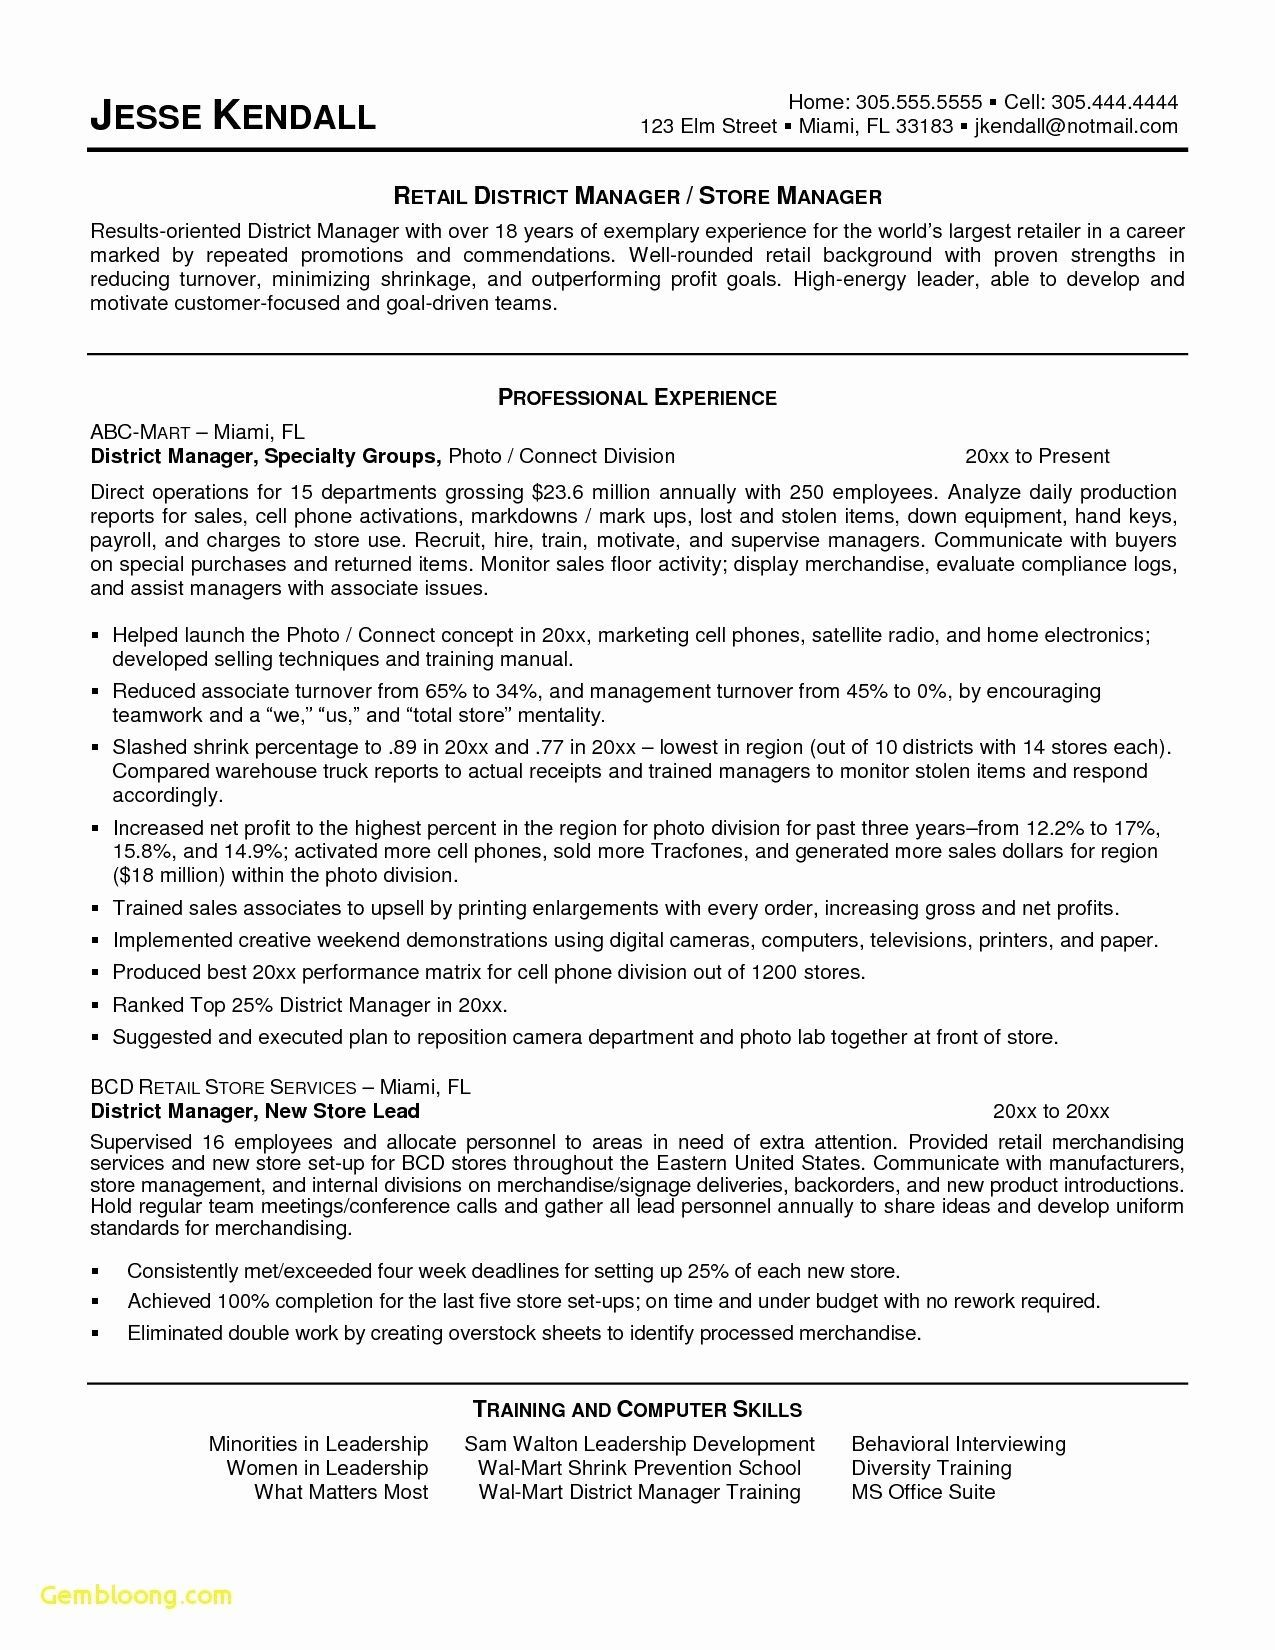 resume objective sample nurse interview salary statements of work ideas foundation Resume Sample Resume Objectives For Retail Management